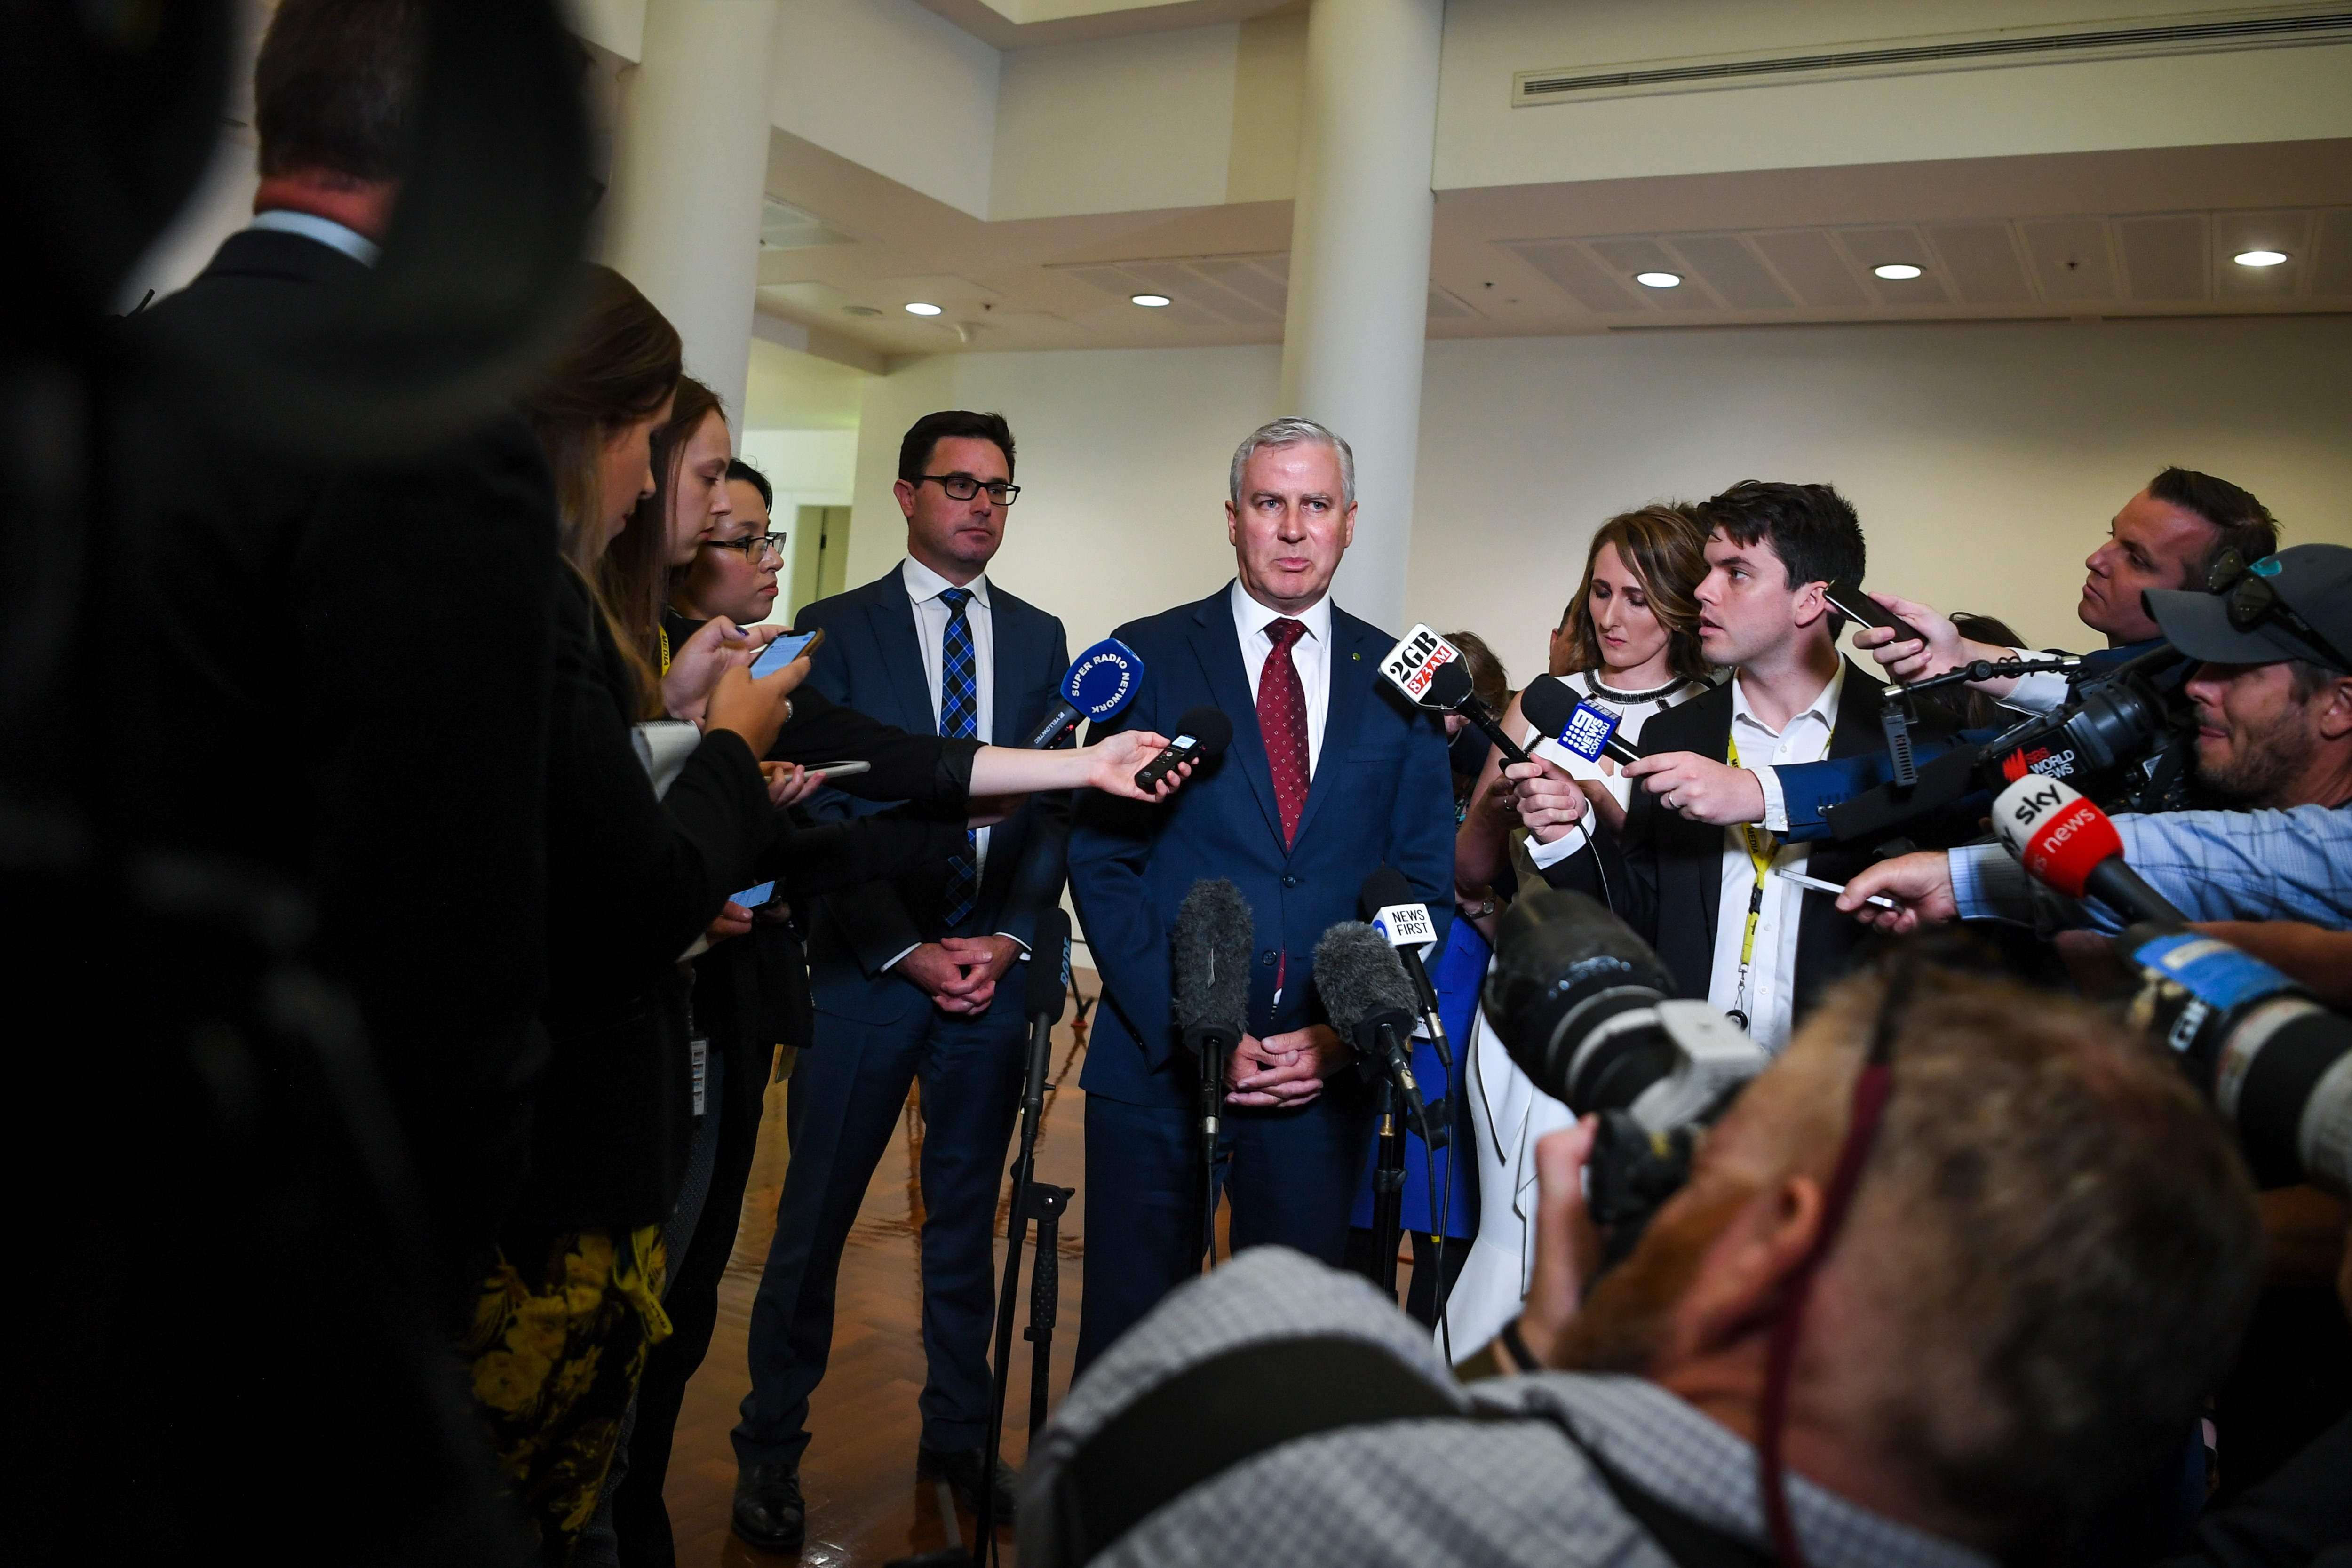 Re-elected Nationals leader Michael McCormack (right) and newly-elected Deputy leader David Littleproud speak during a press conference at Parliament House.